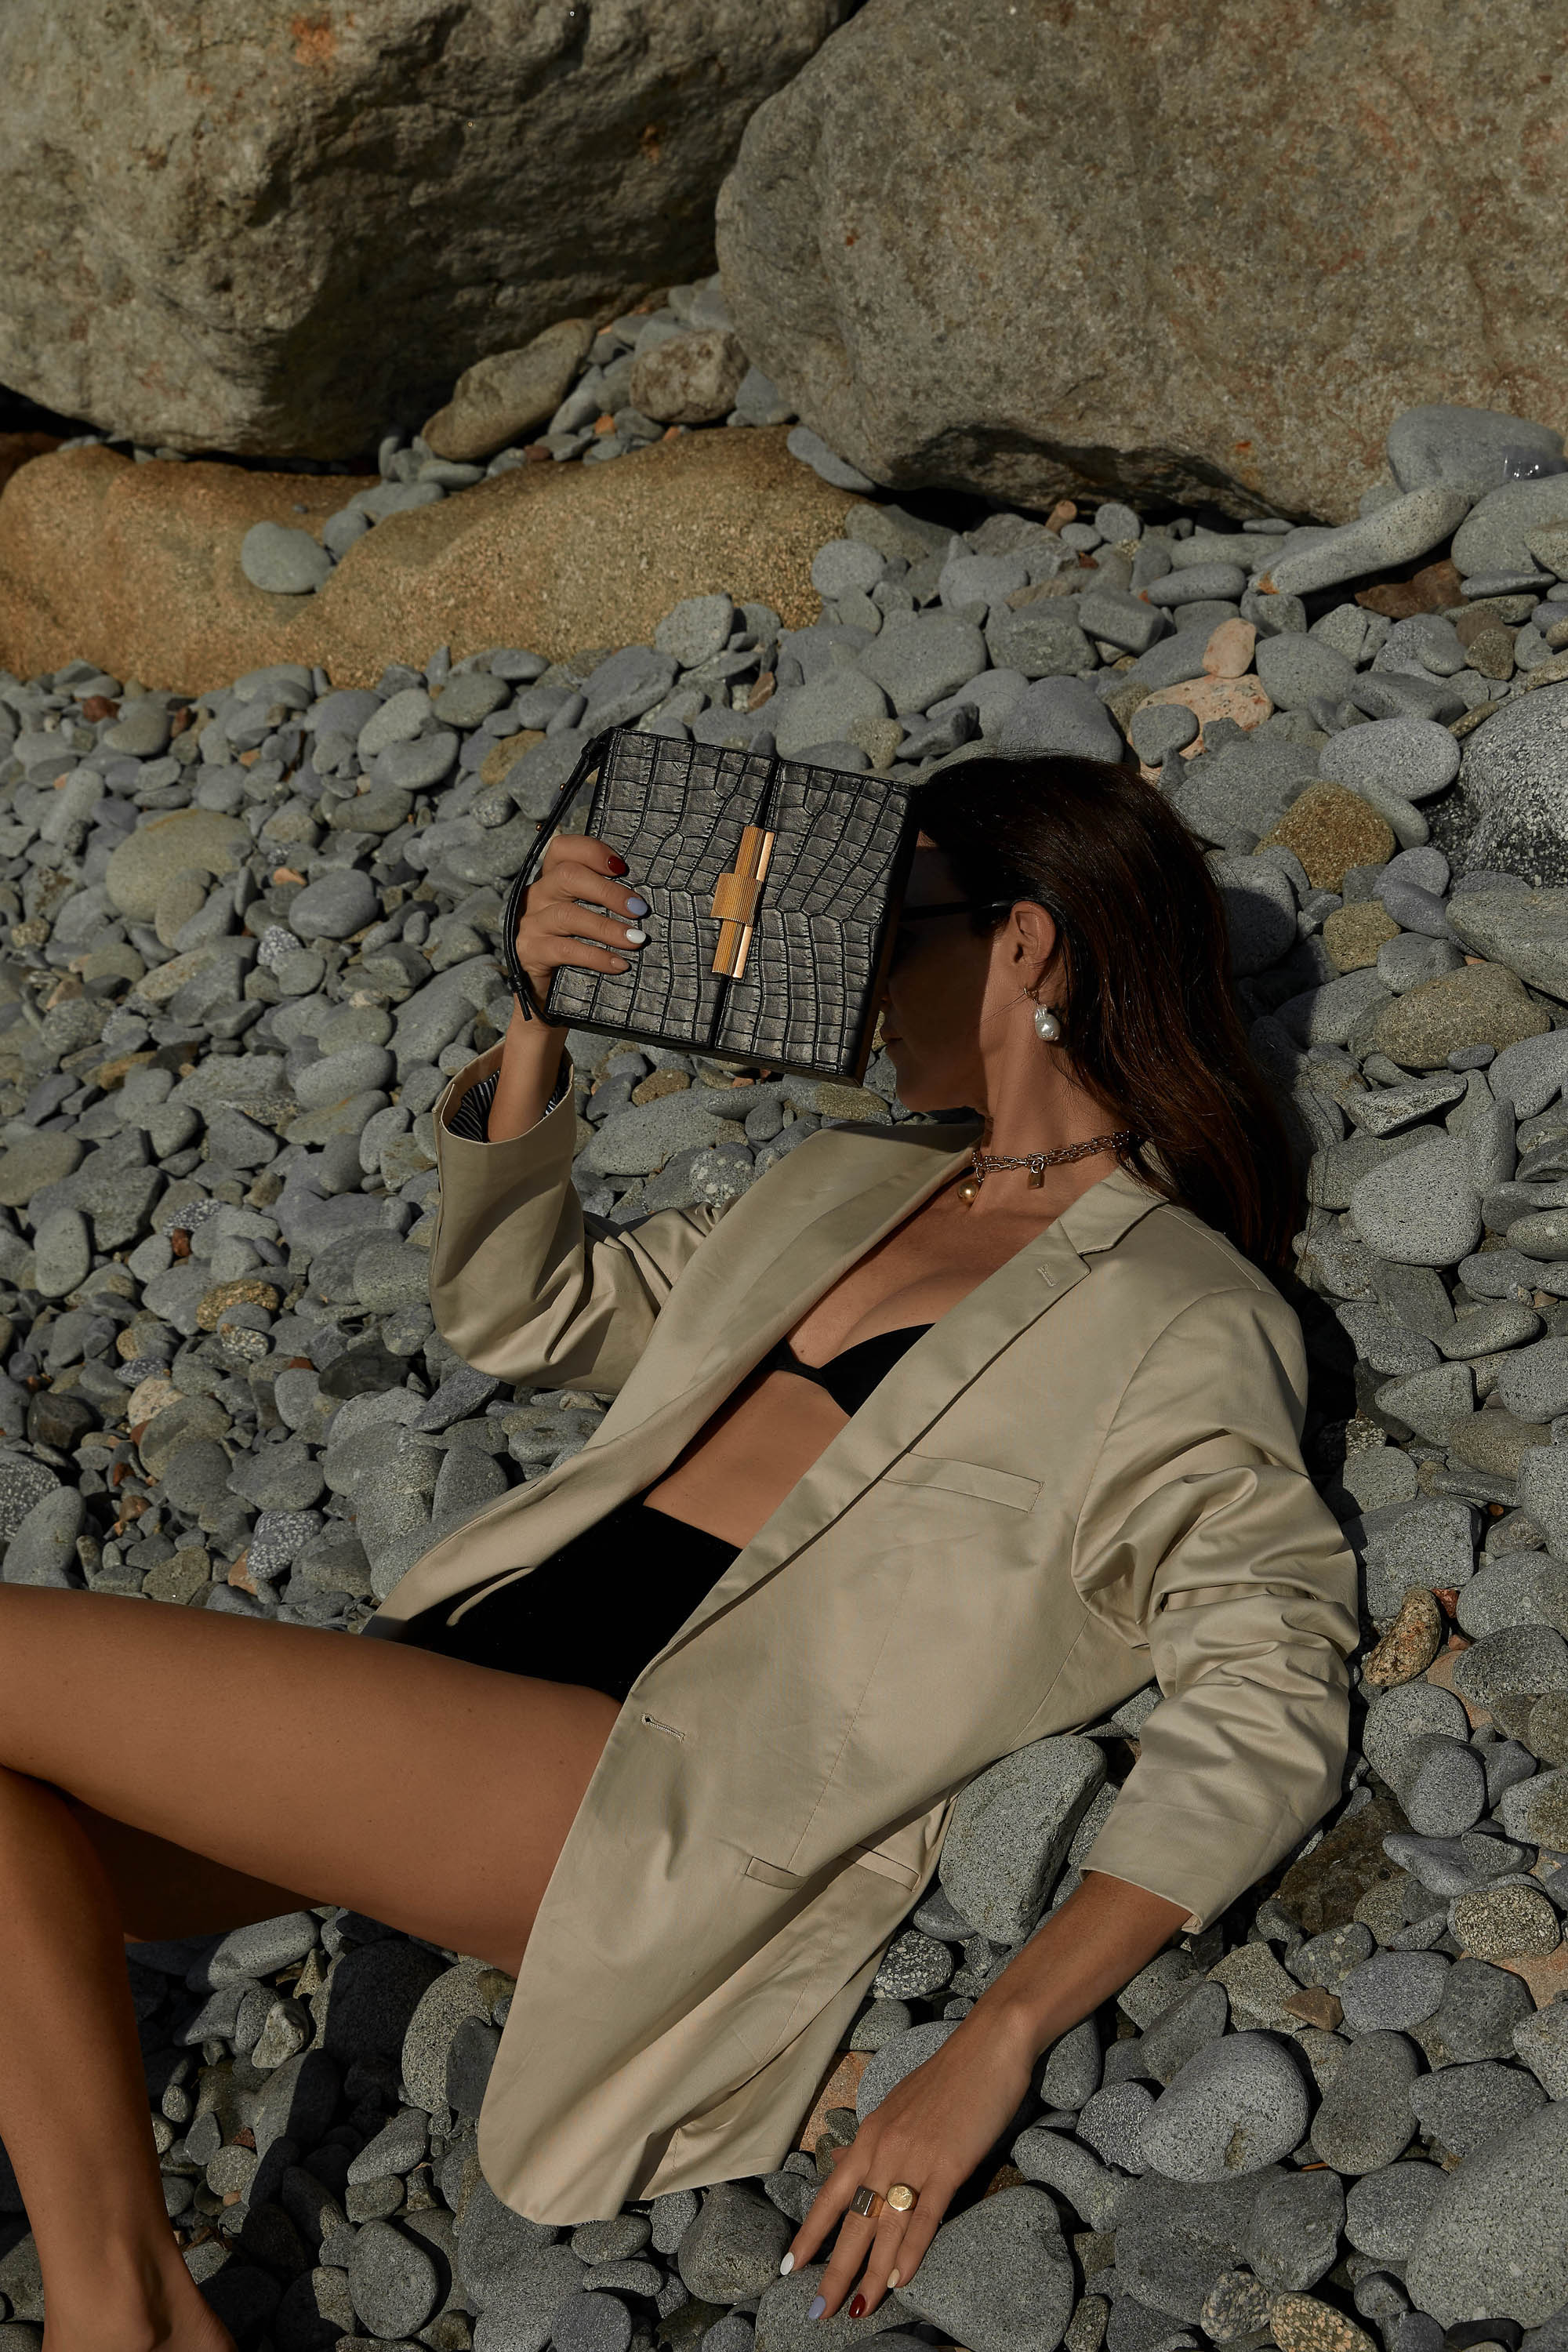 Bottega, Veneta, Quilted, Heel, Box, Bag, Oracle Fox, France, Editorial, Amanda, Shadforth, Matches, Fashion